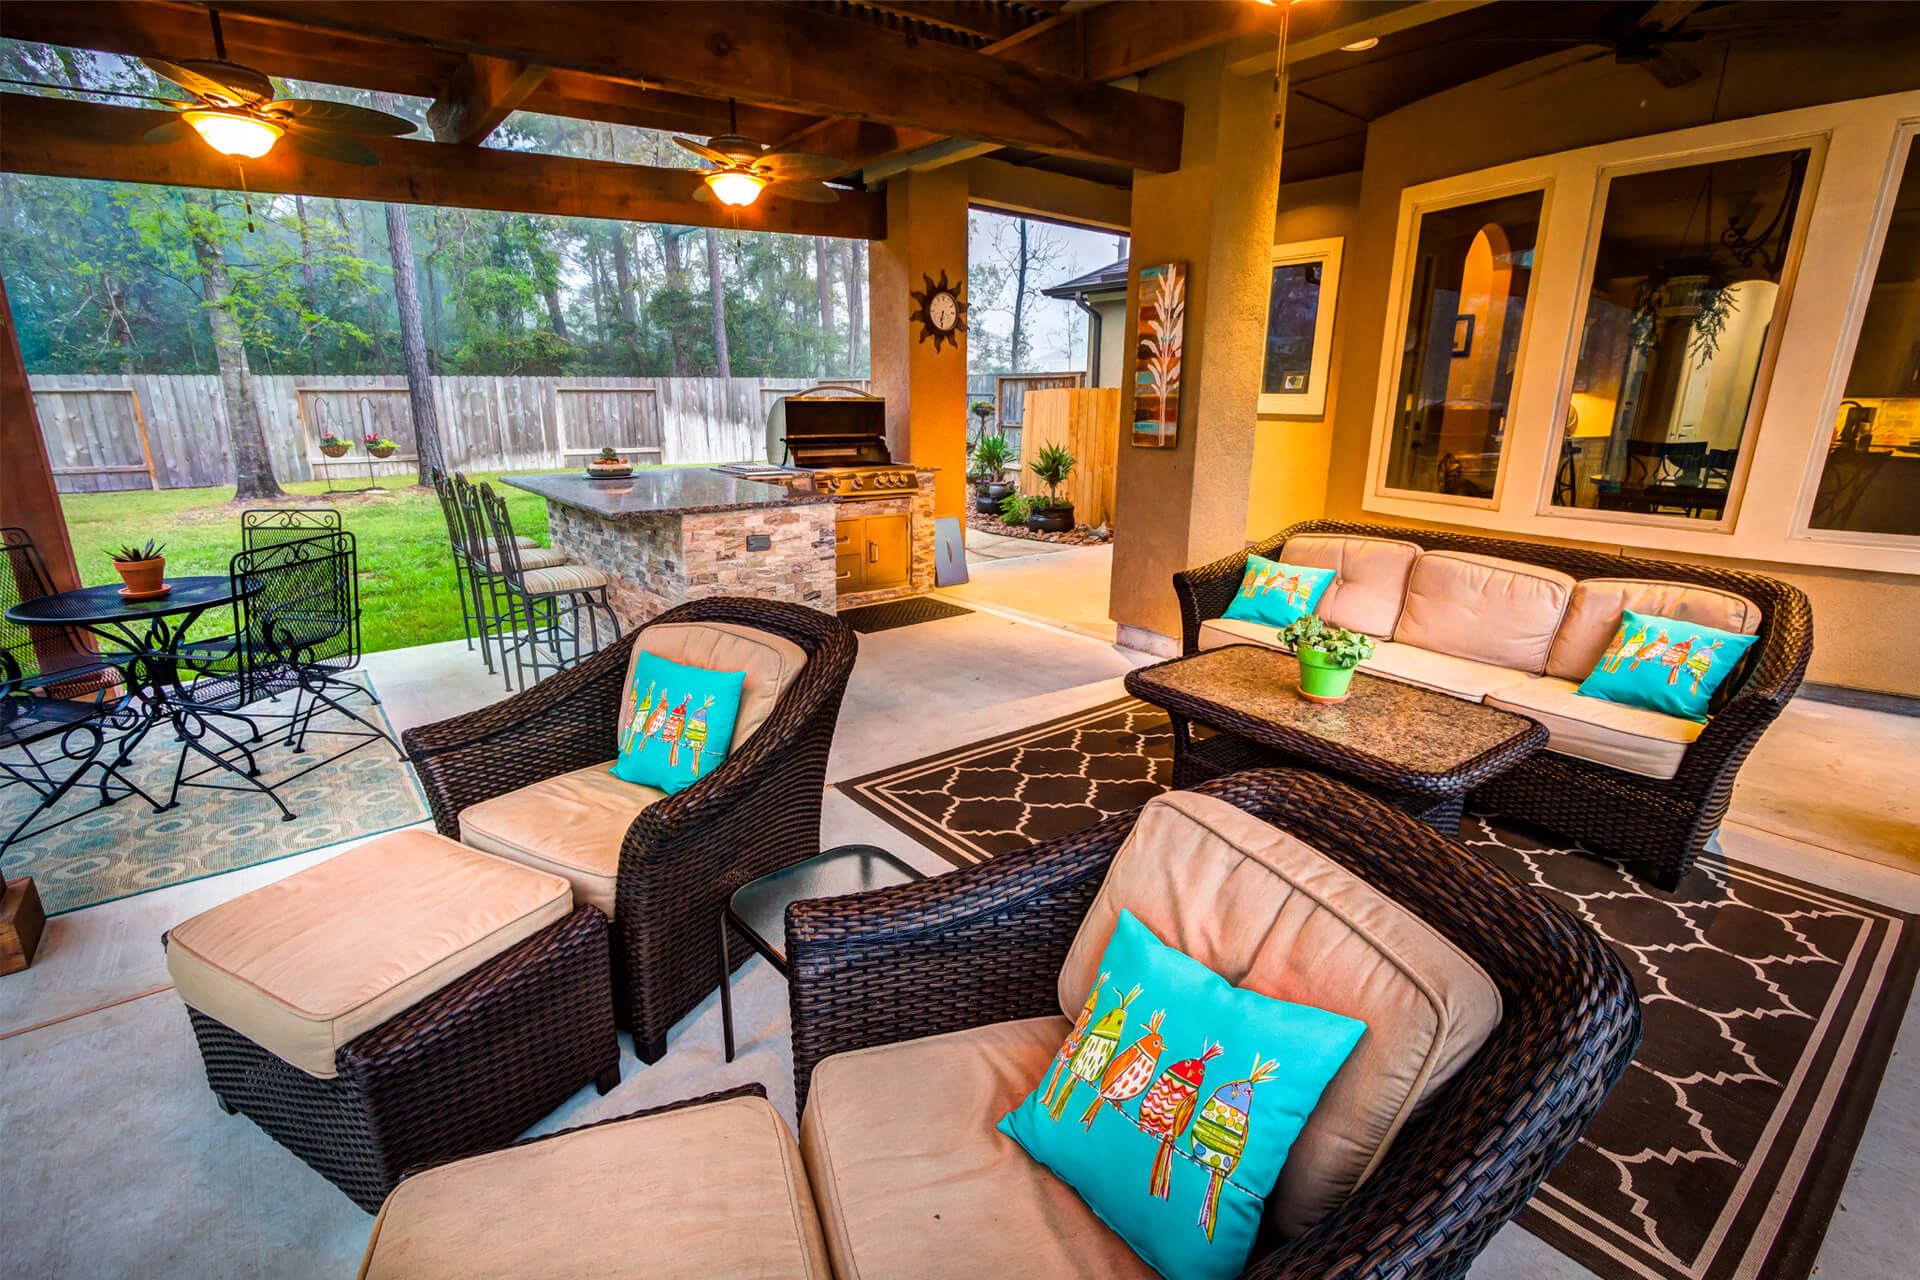 The Crescent Oaks - Custom Outdoor Pergola with Outdoor Kitchen and Living Space in The Woodlands, Texas